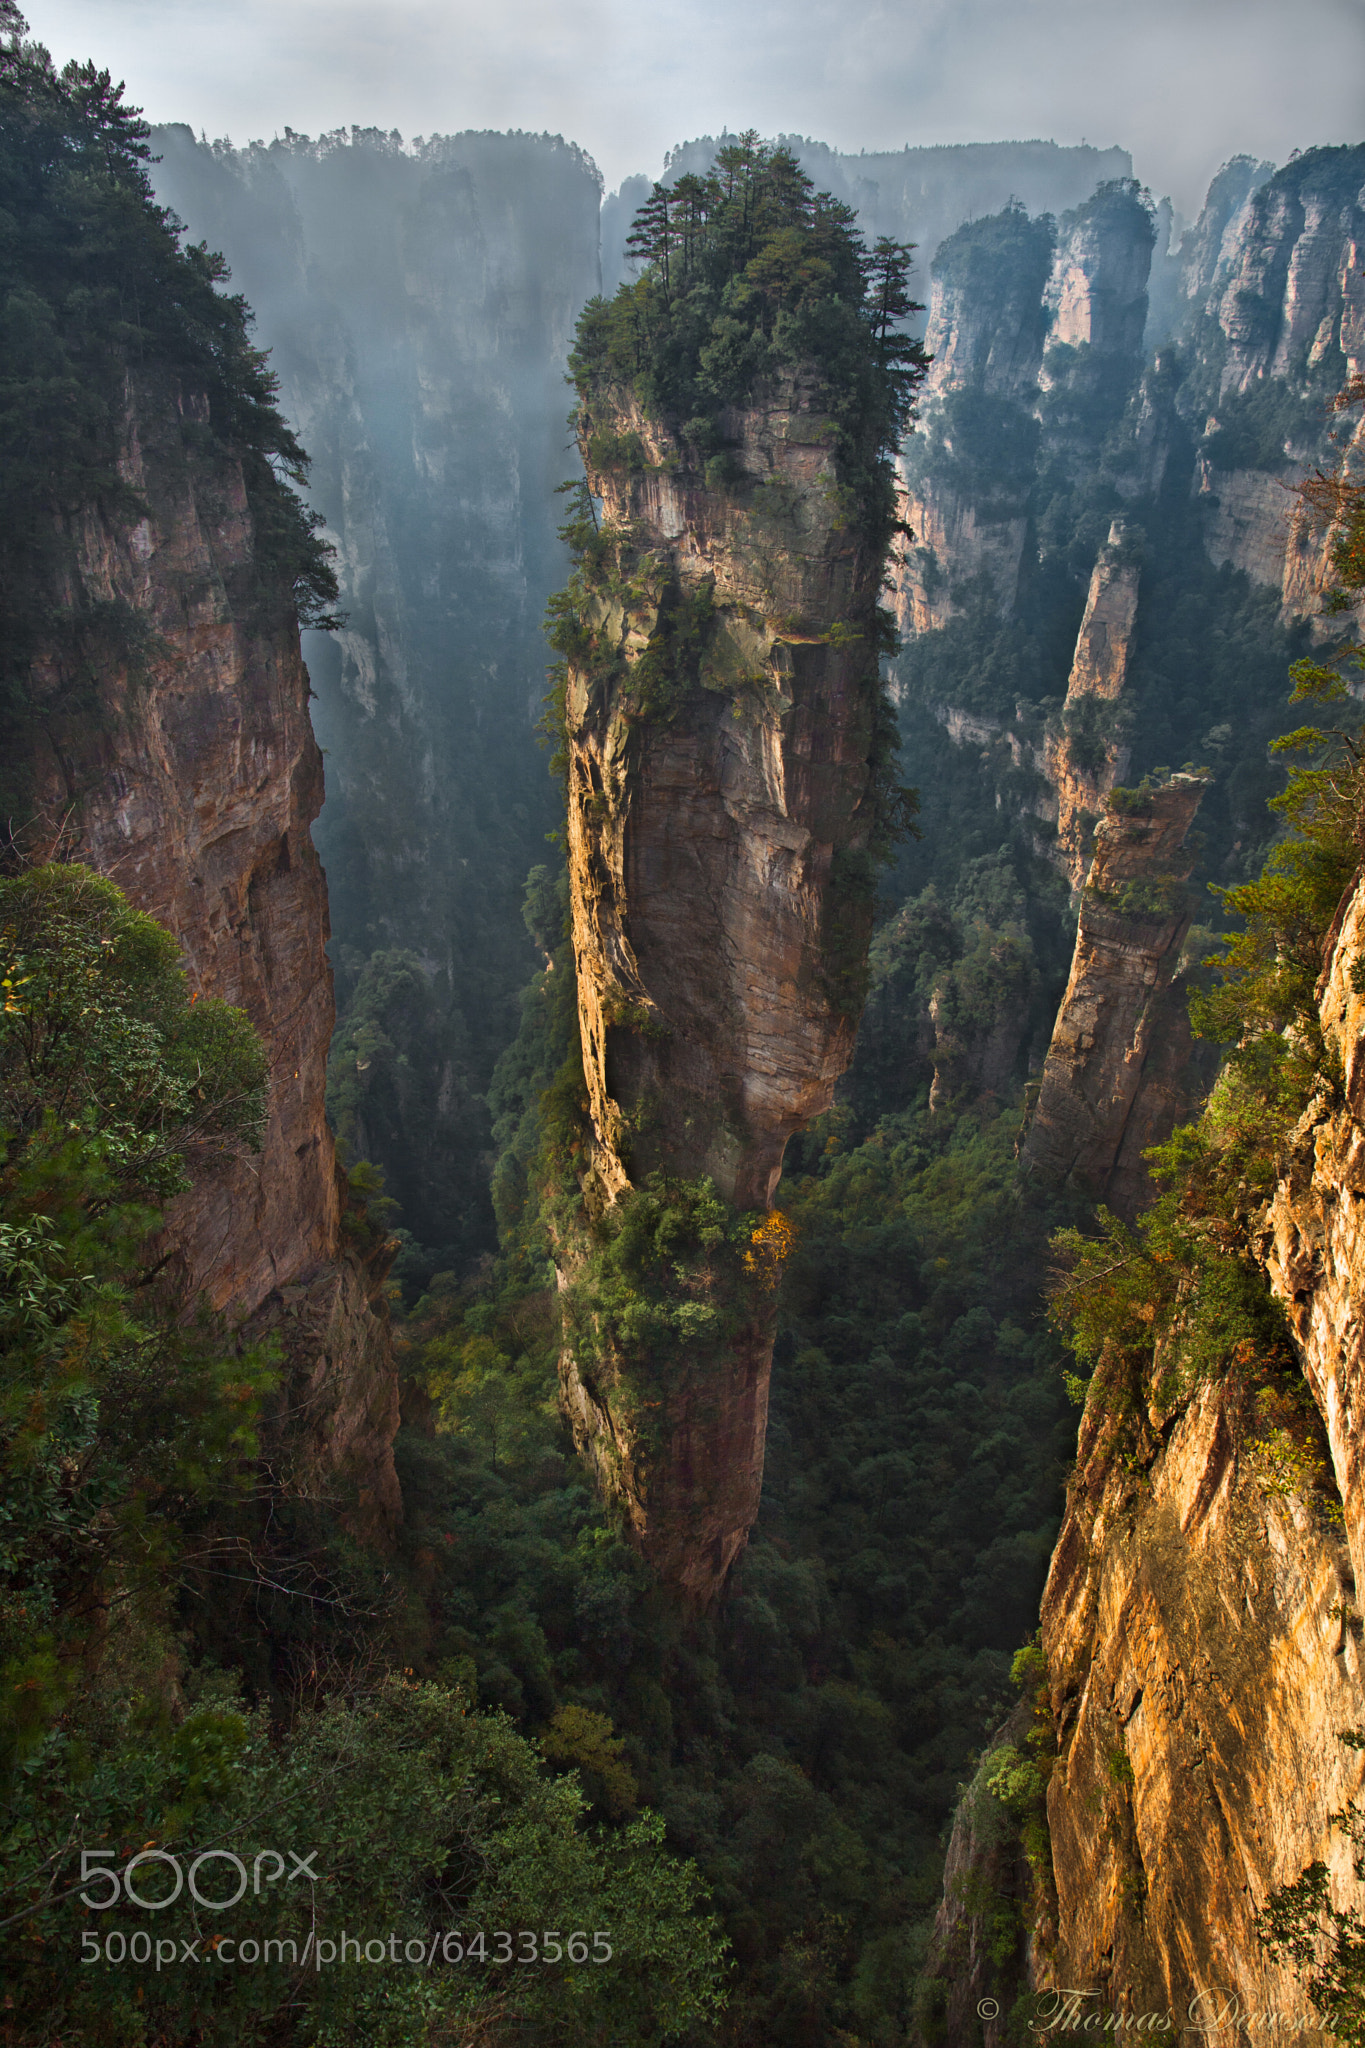 one of a kind thomas dawson china quartz pillar balancing floating avatar hallelujah Zhangjiajie National Park south pillar heaven